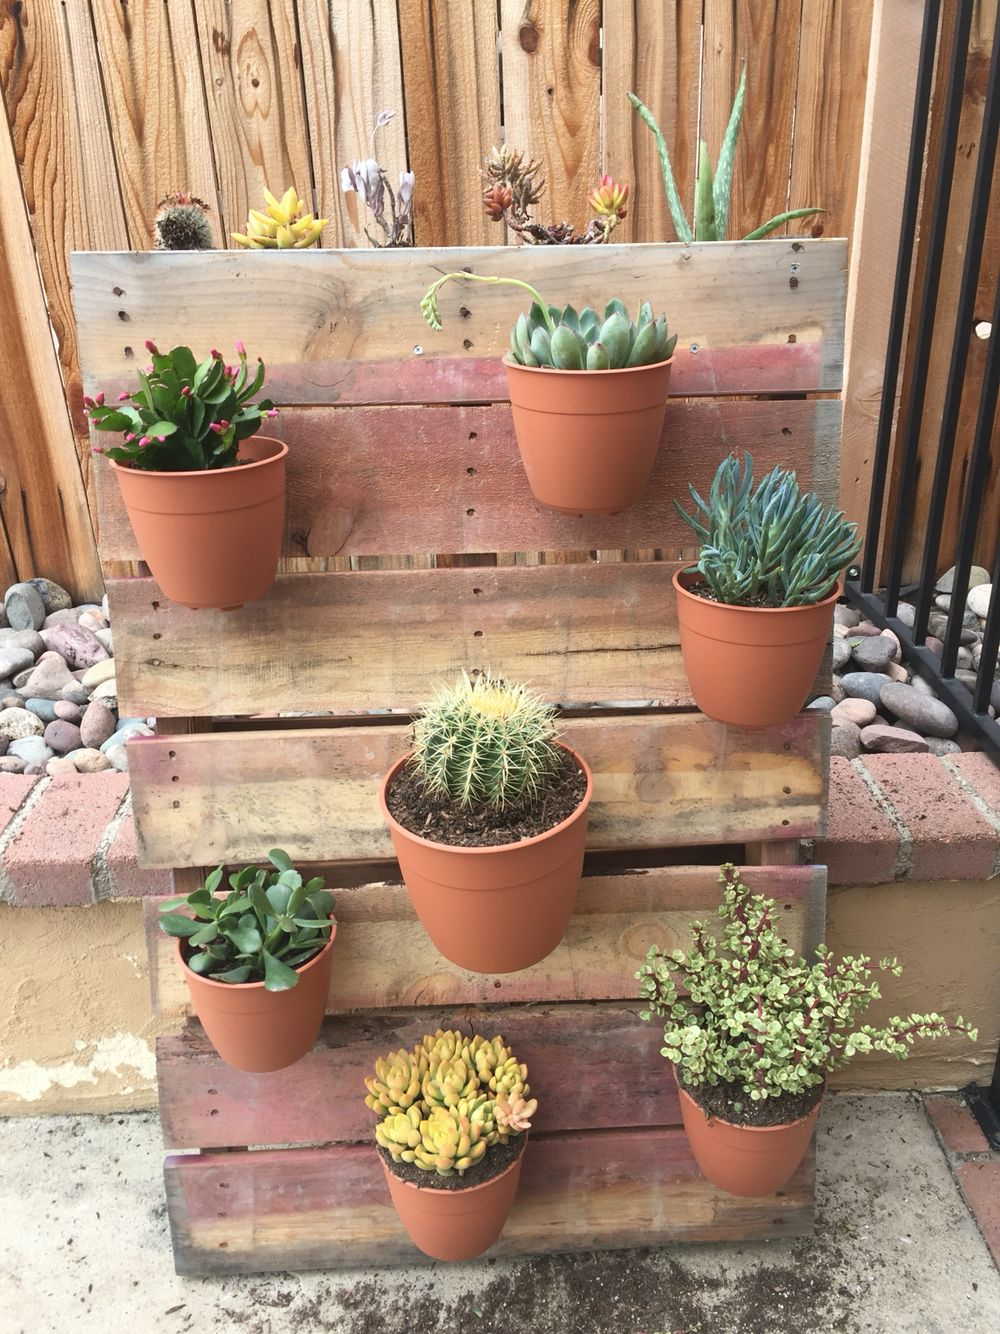 My succulent garden. Home Depot sells the pallets for $15. Instead ...